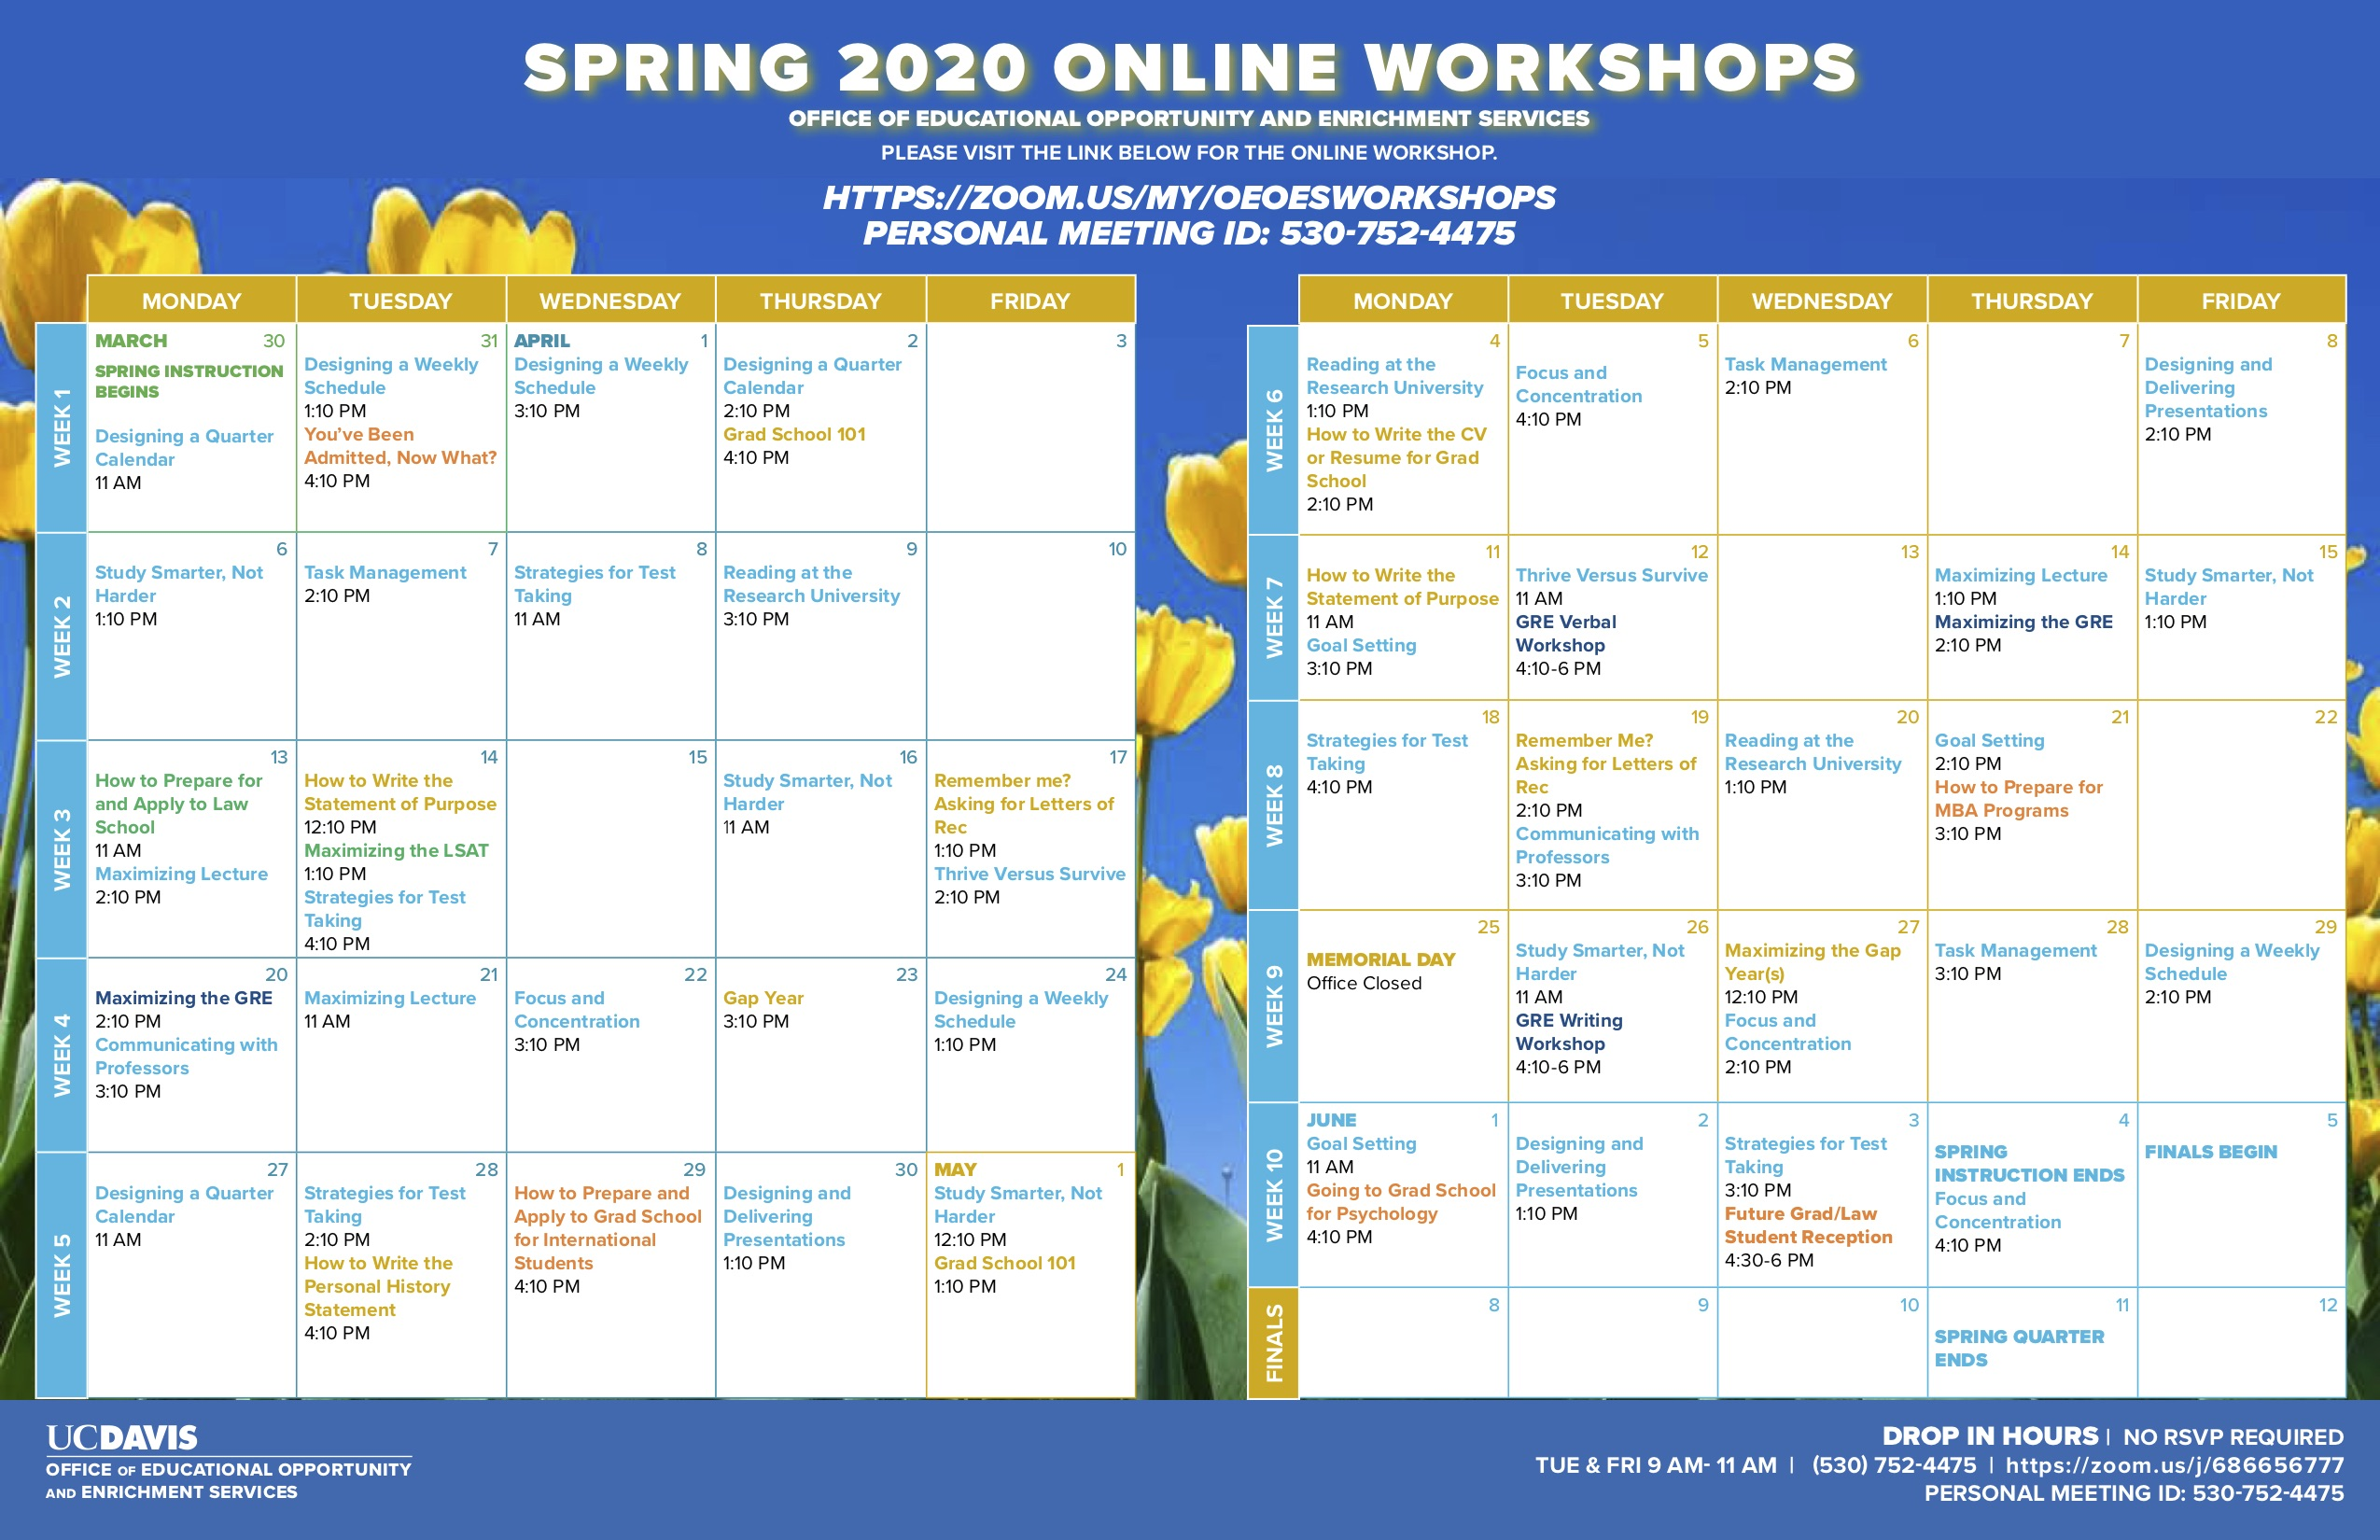 picture of OEOES workshop calendar